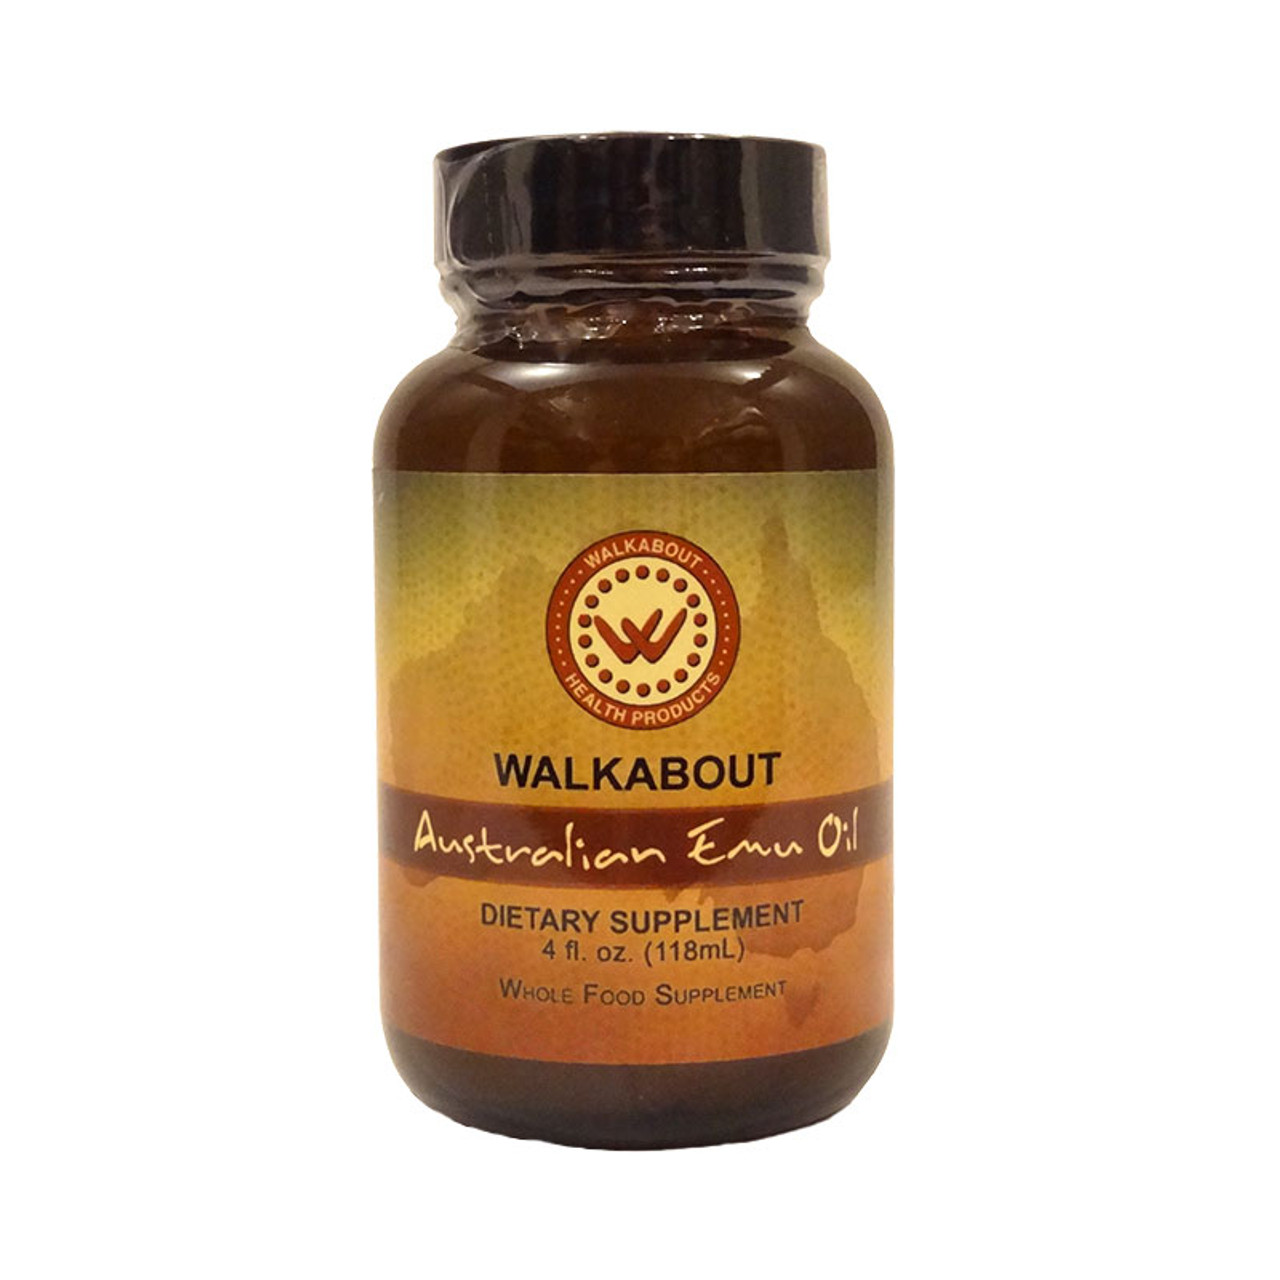 Picture of a 4 oz bottle of Walkabout Australian Emu Oil Liquid dietary  supplement.